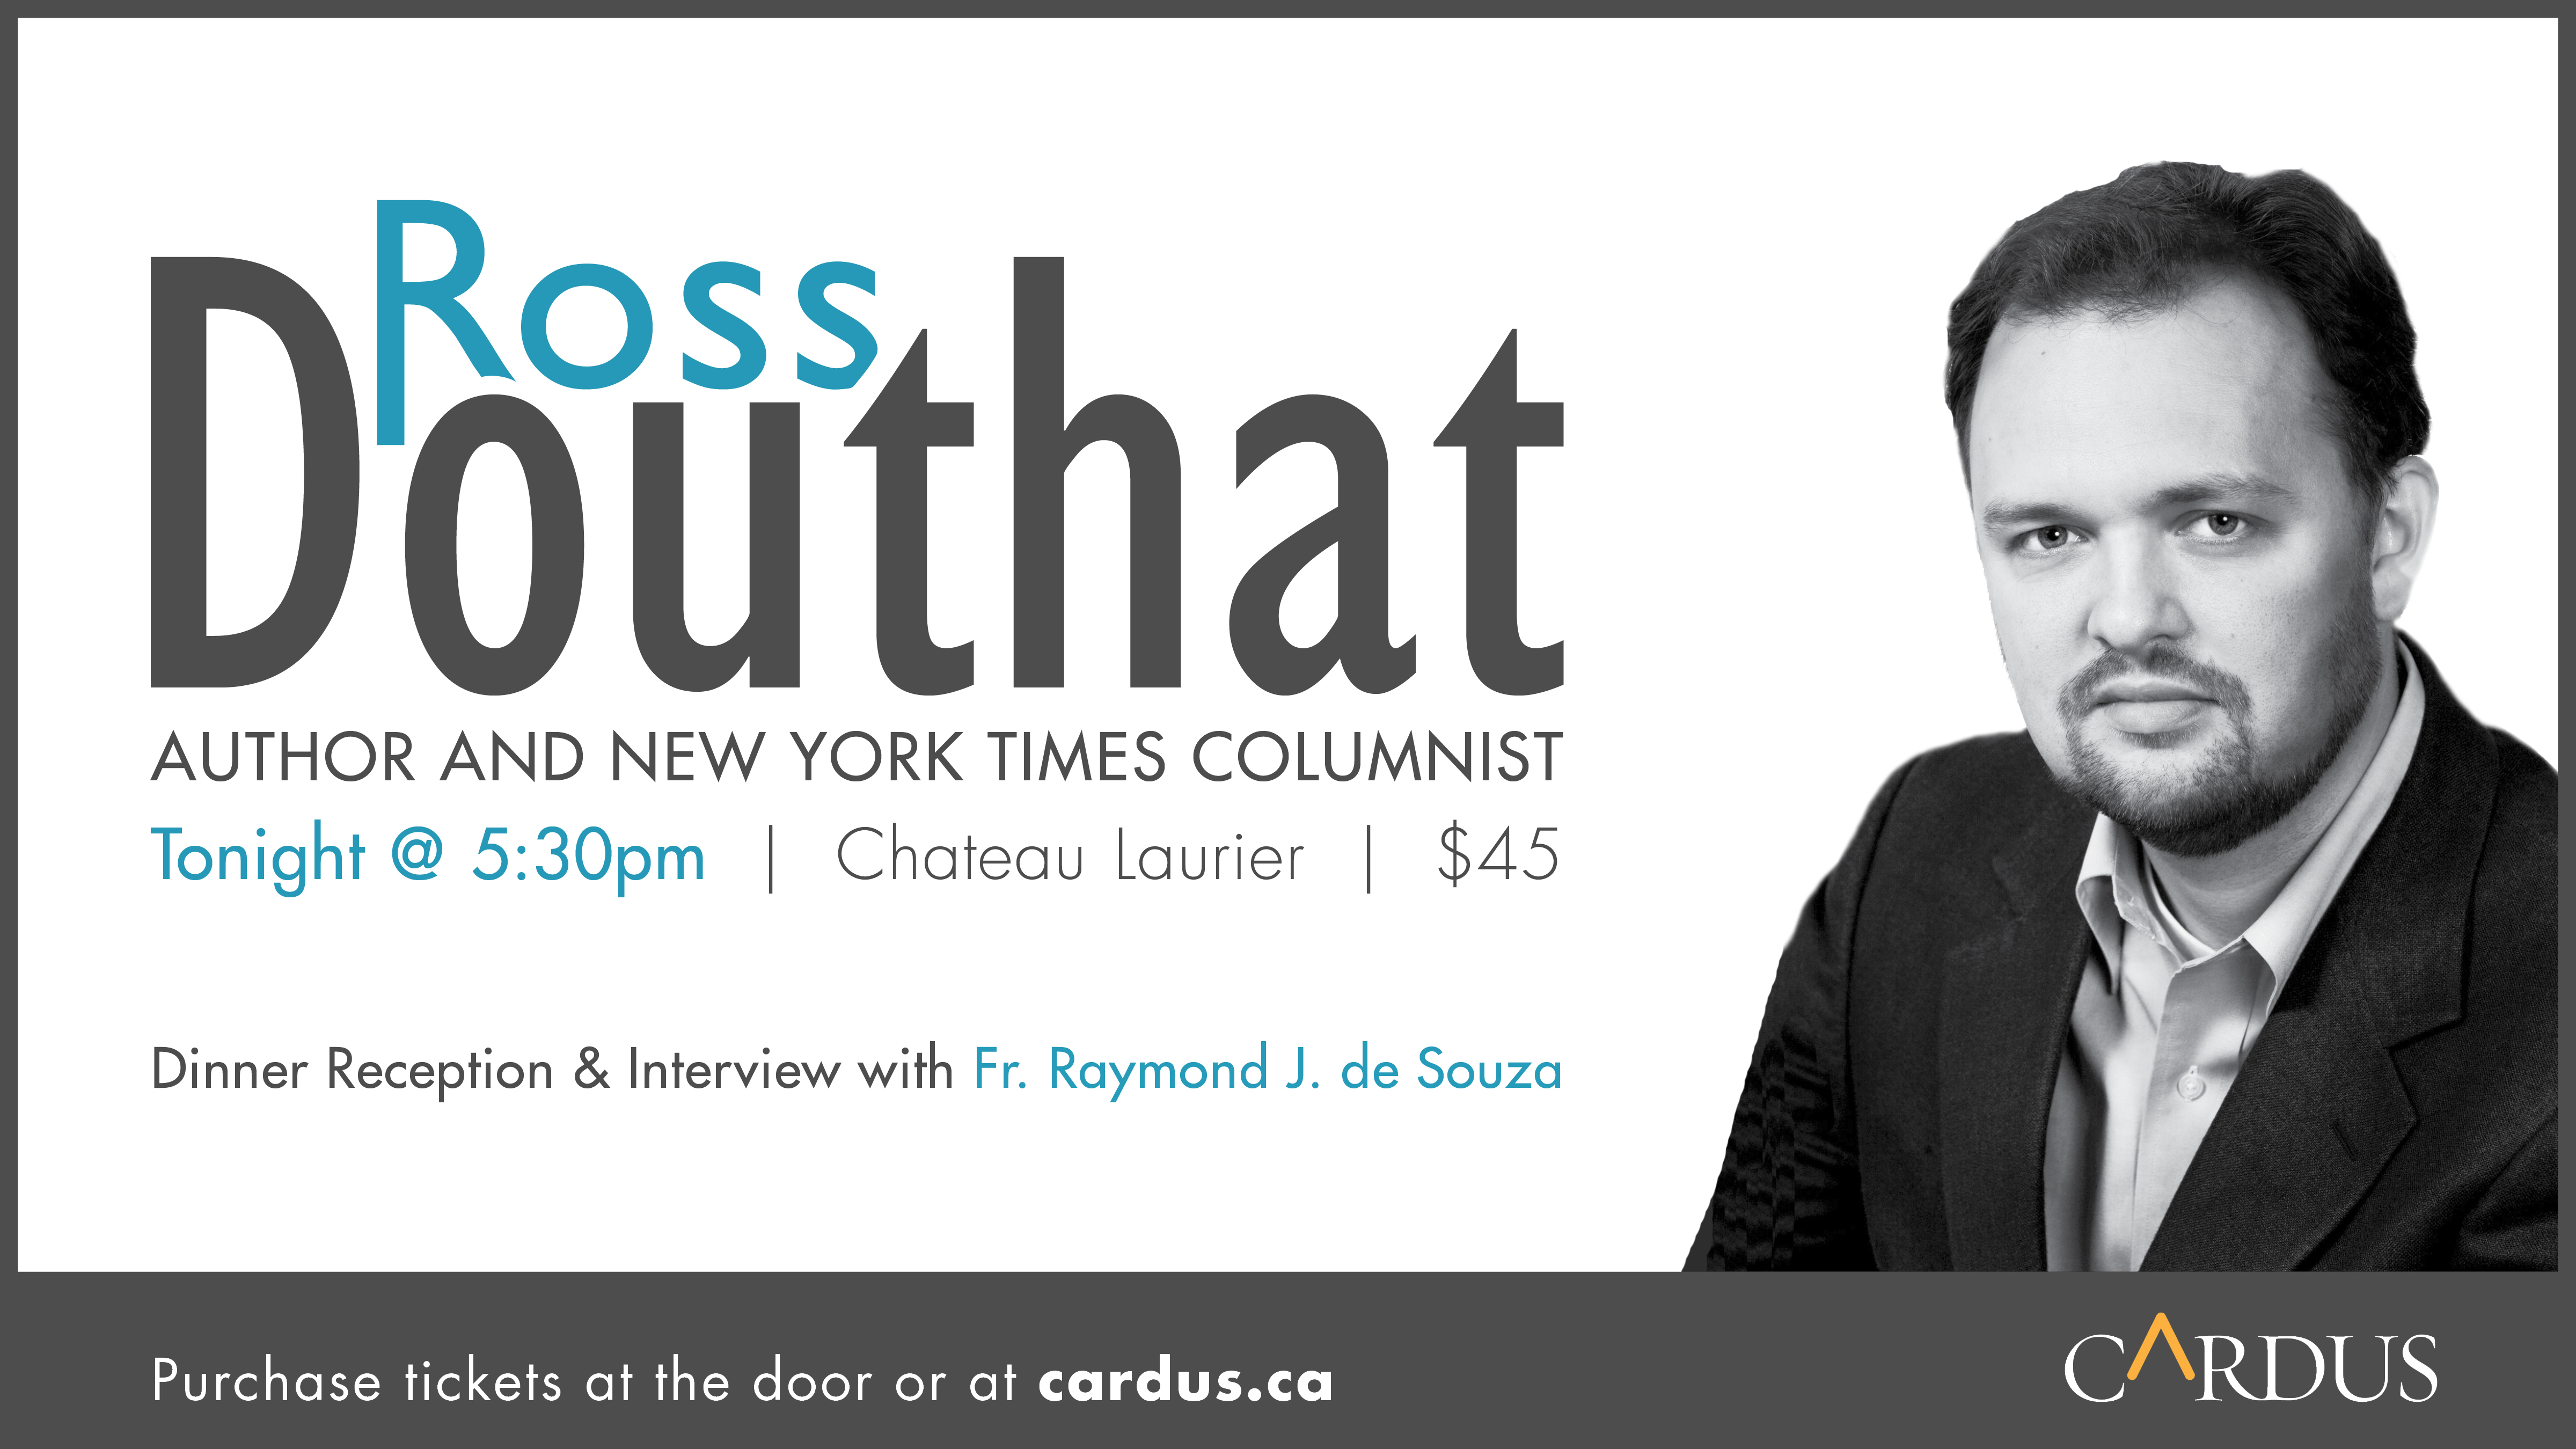 The Hill Family Lecture Series: Ross Douthat Live in Ottawa